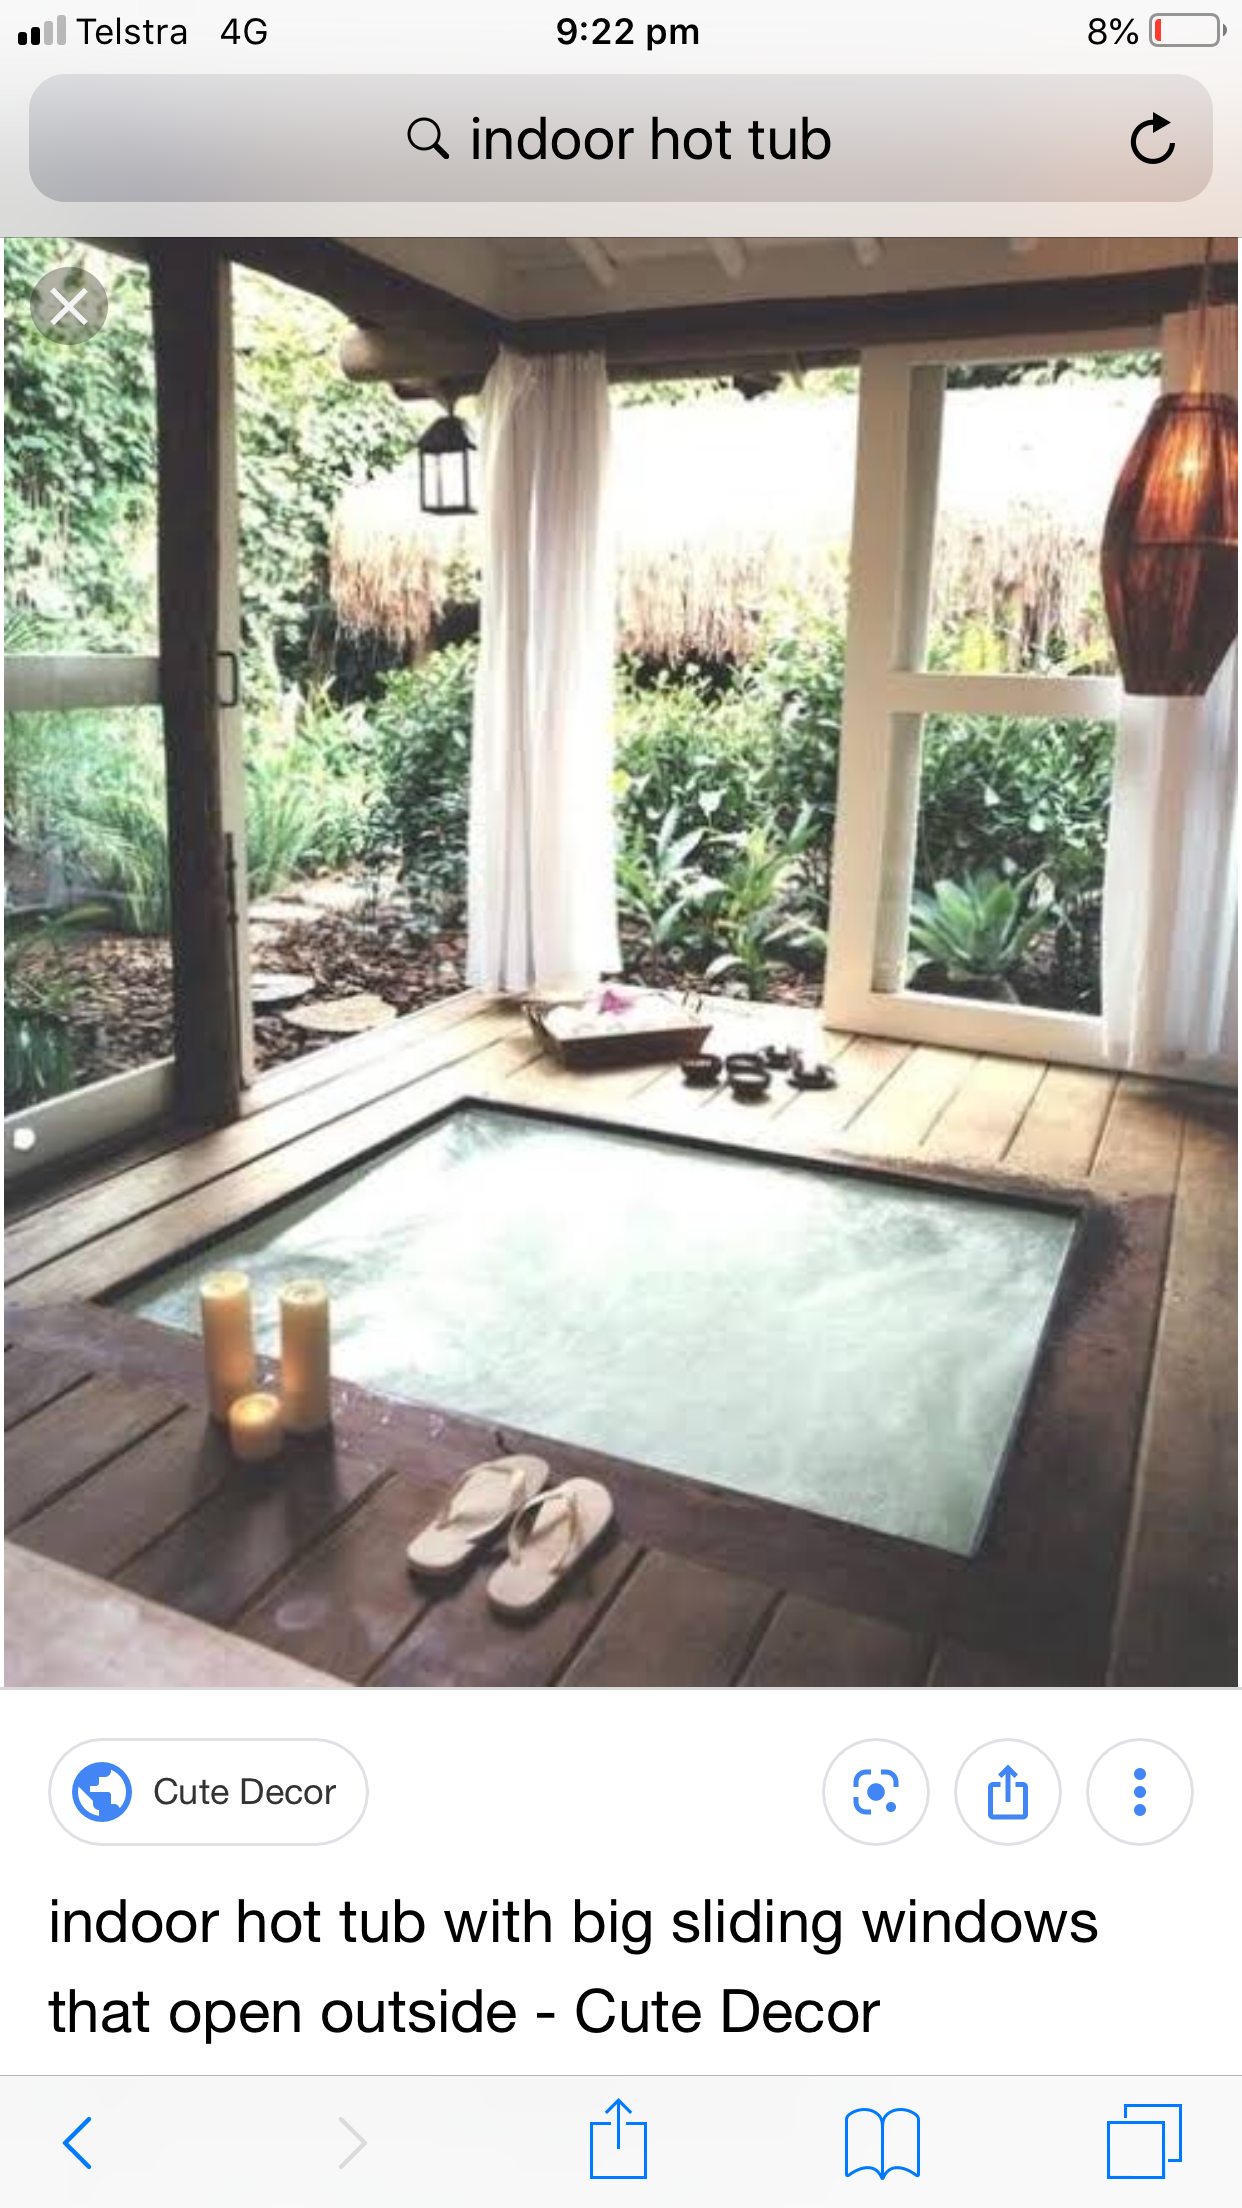 Pin By Pedro Patagonia Primero On When I Have A Home In 2020 Indoor Hot Tub Luxury Hot Tubs Outdoor Bathrooms